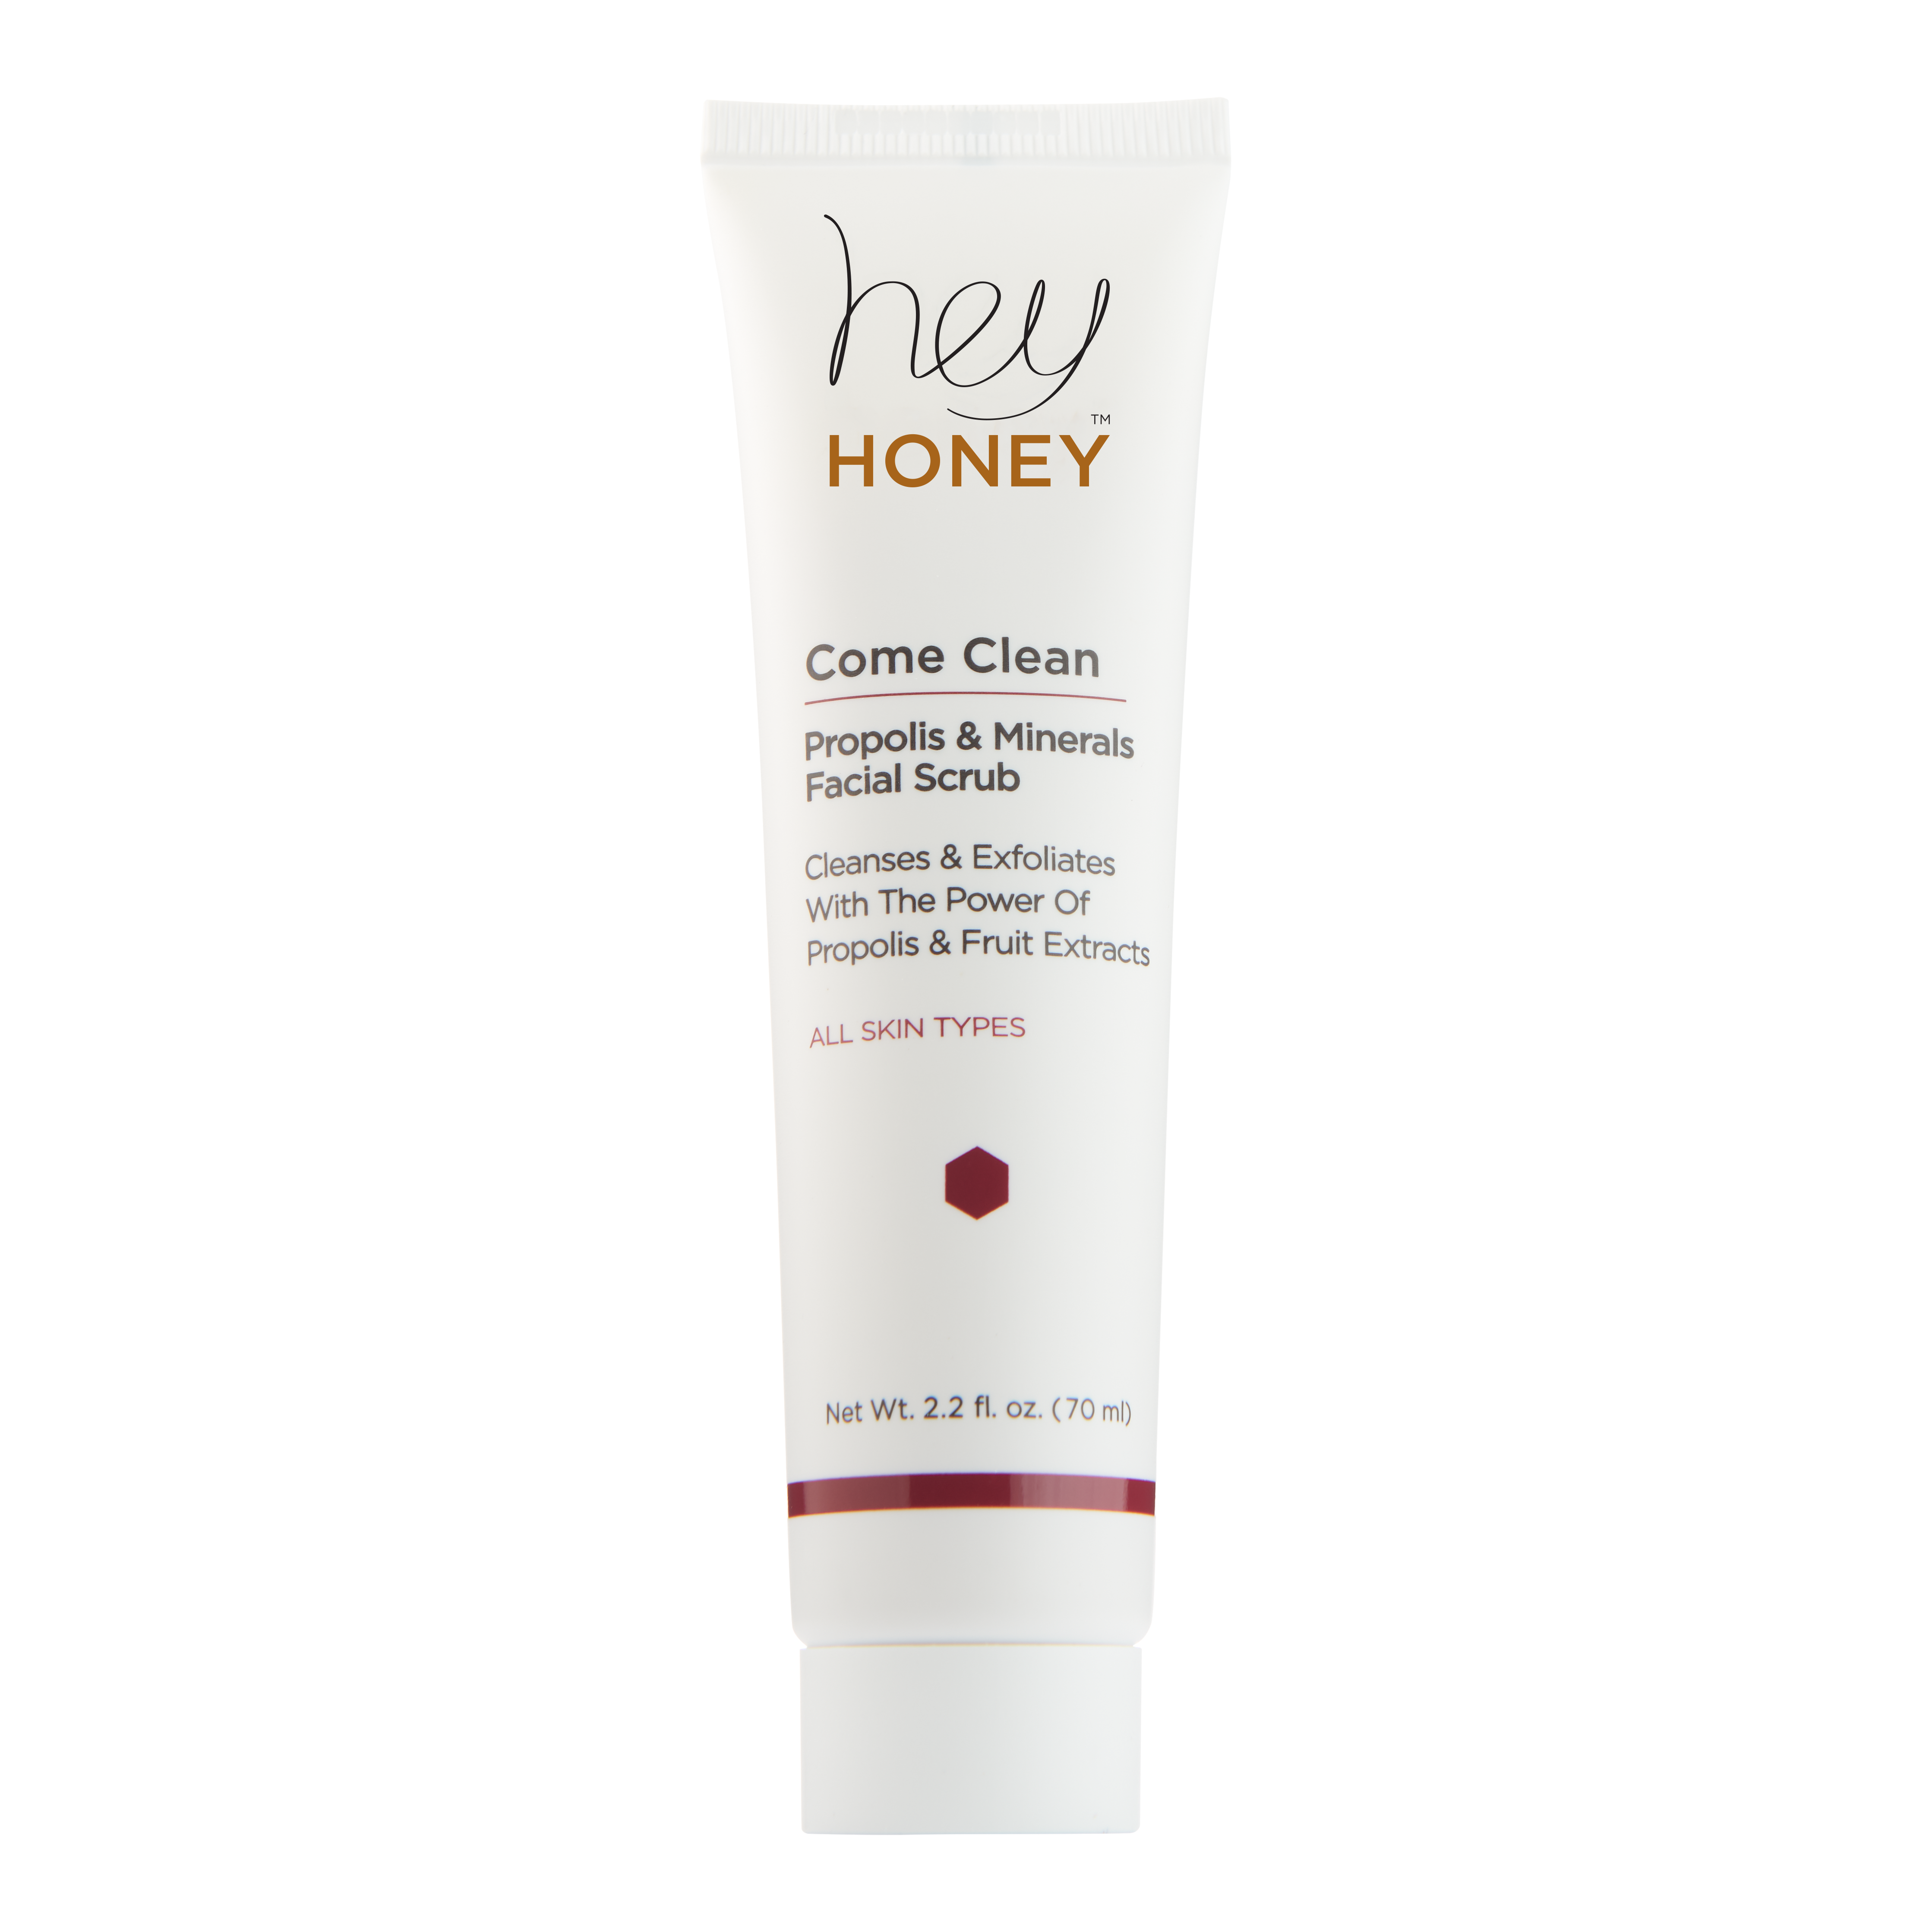 Hey Honey COME CLEAN Facial Scrub with Propolis & Minerals